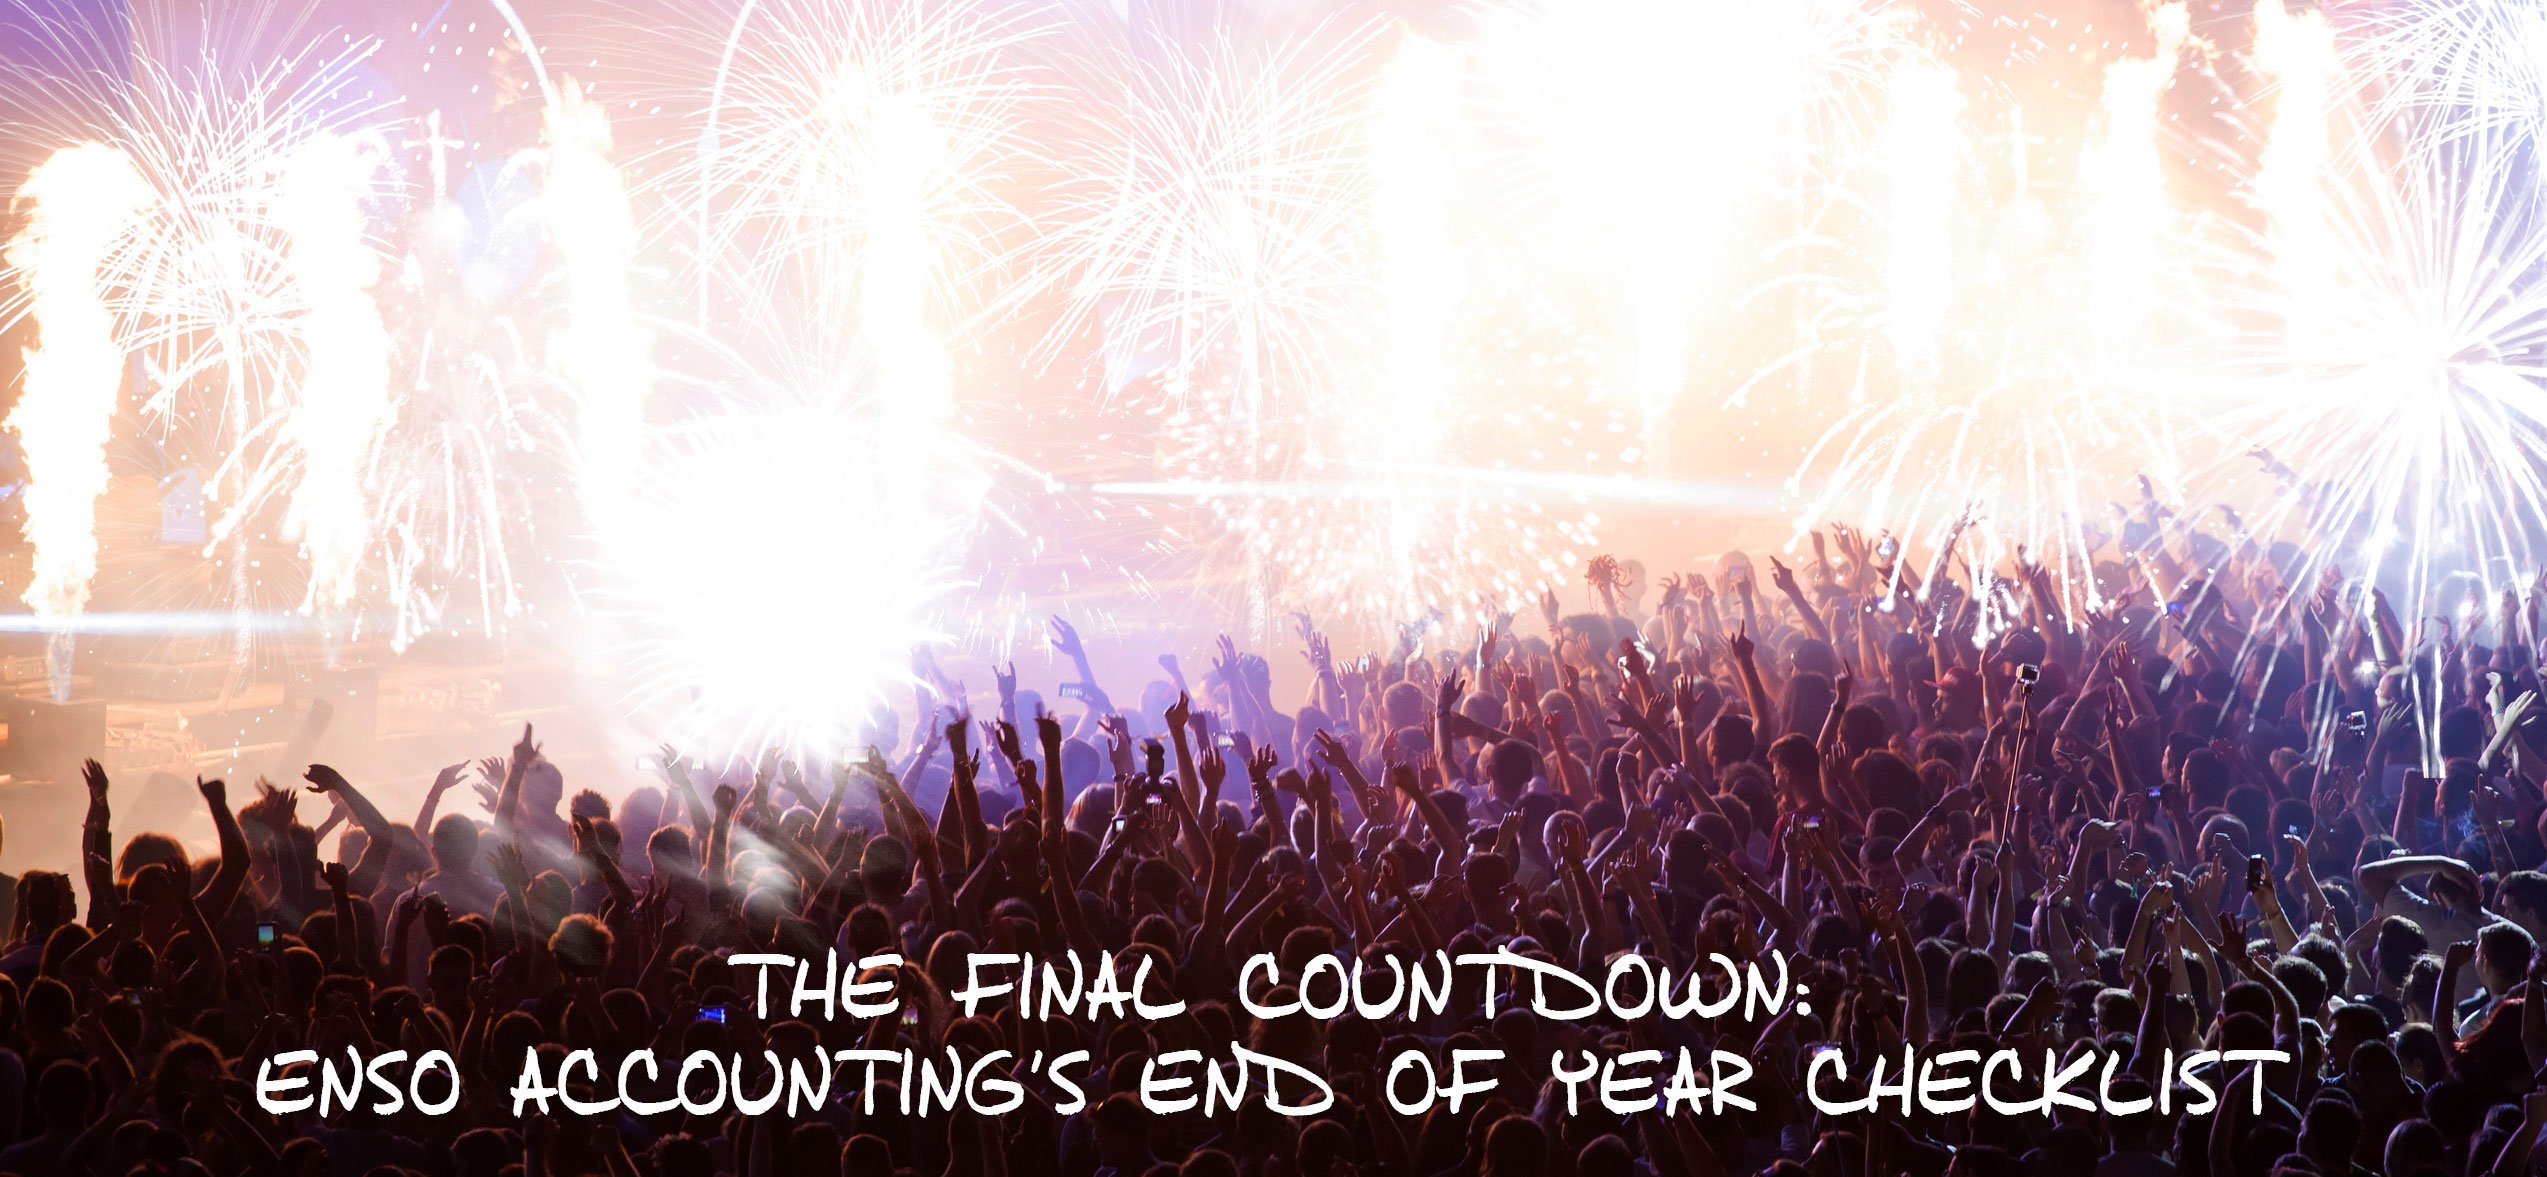 The Final Countdown end of year checklist